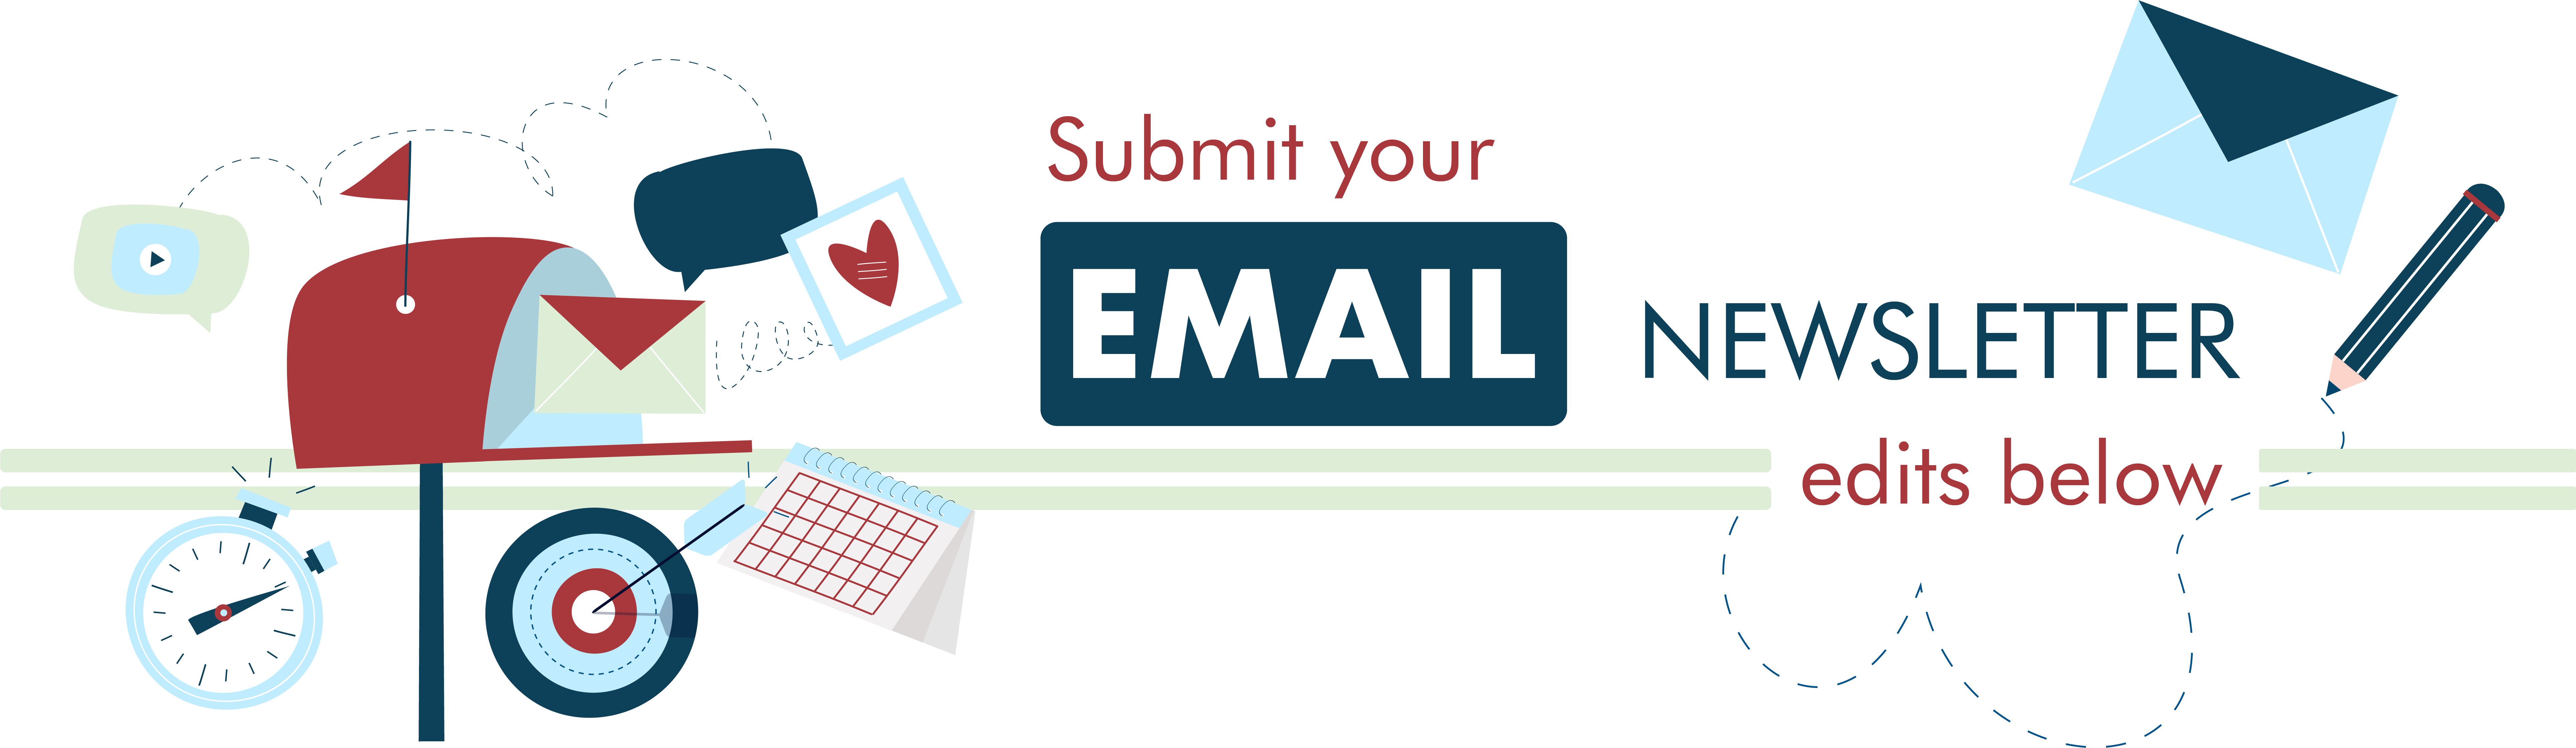 Submit your email newsletter edits below